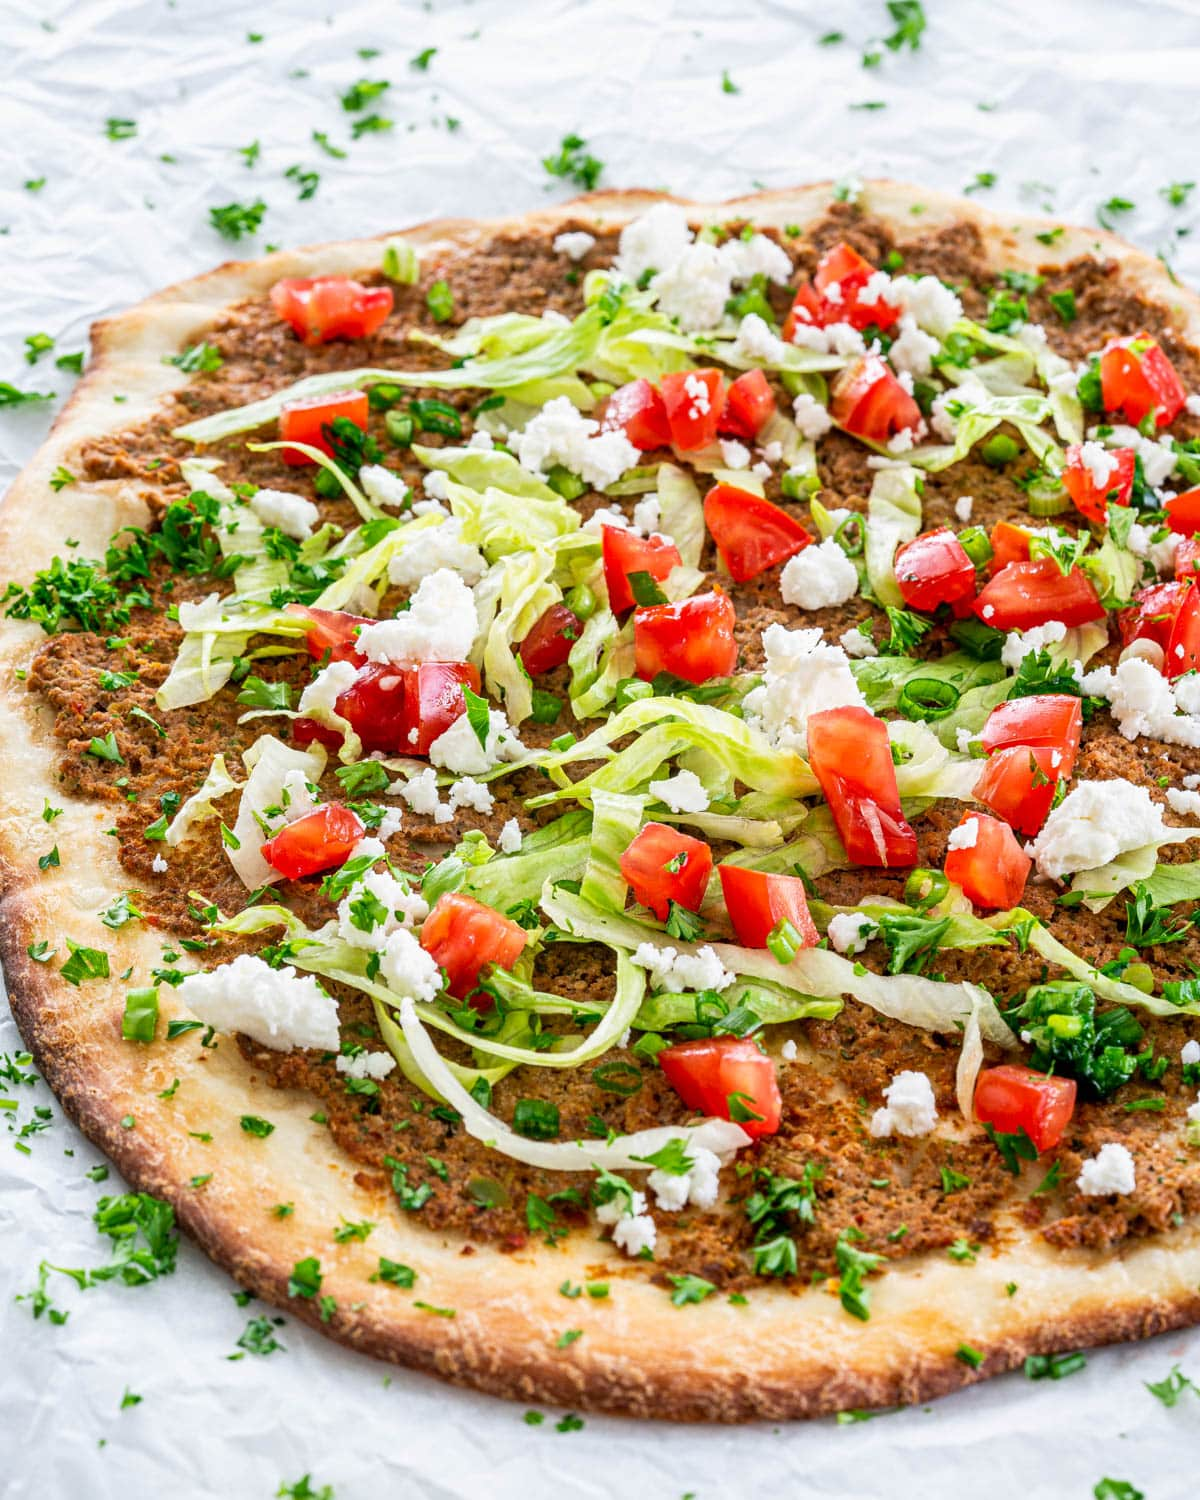 a lahmacun topped with lettuce, tomatoes and feta cheese